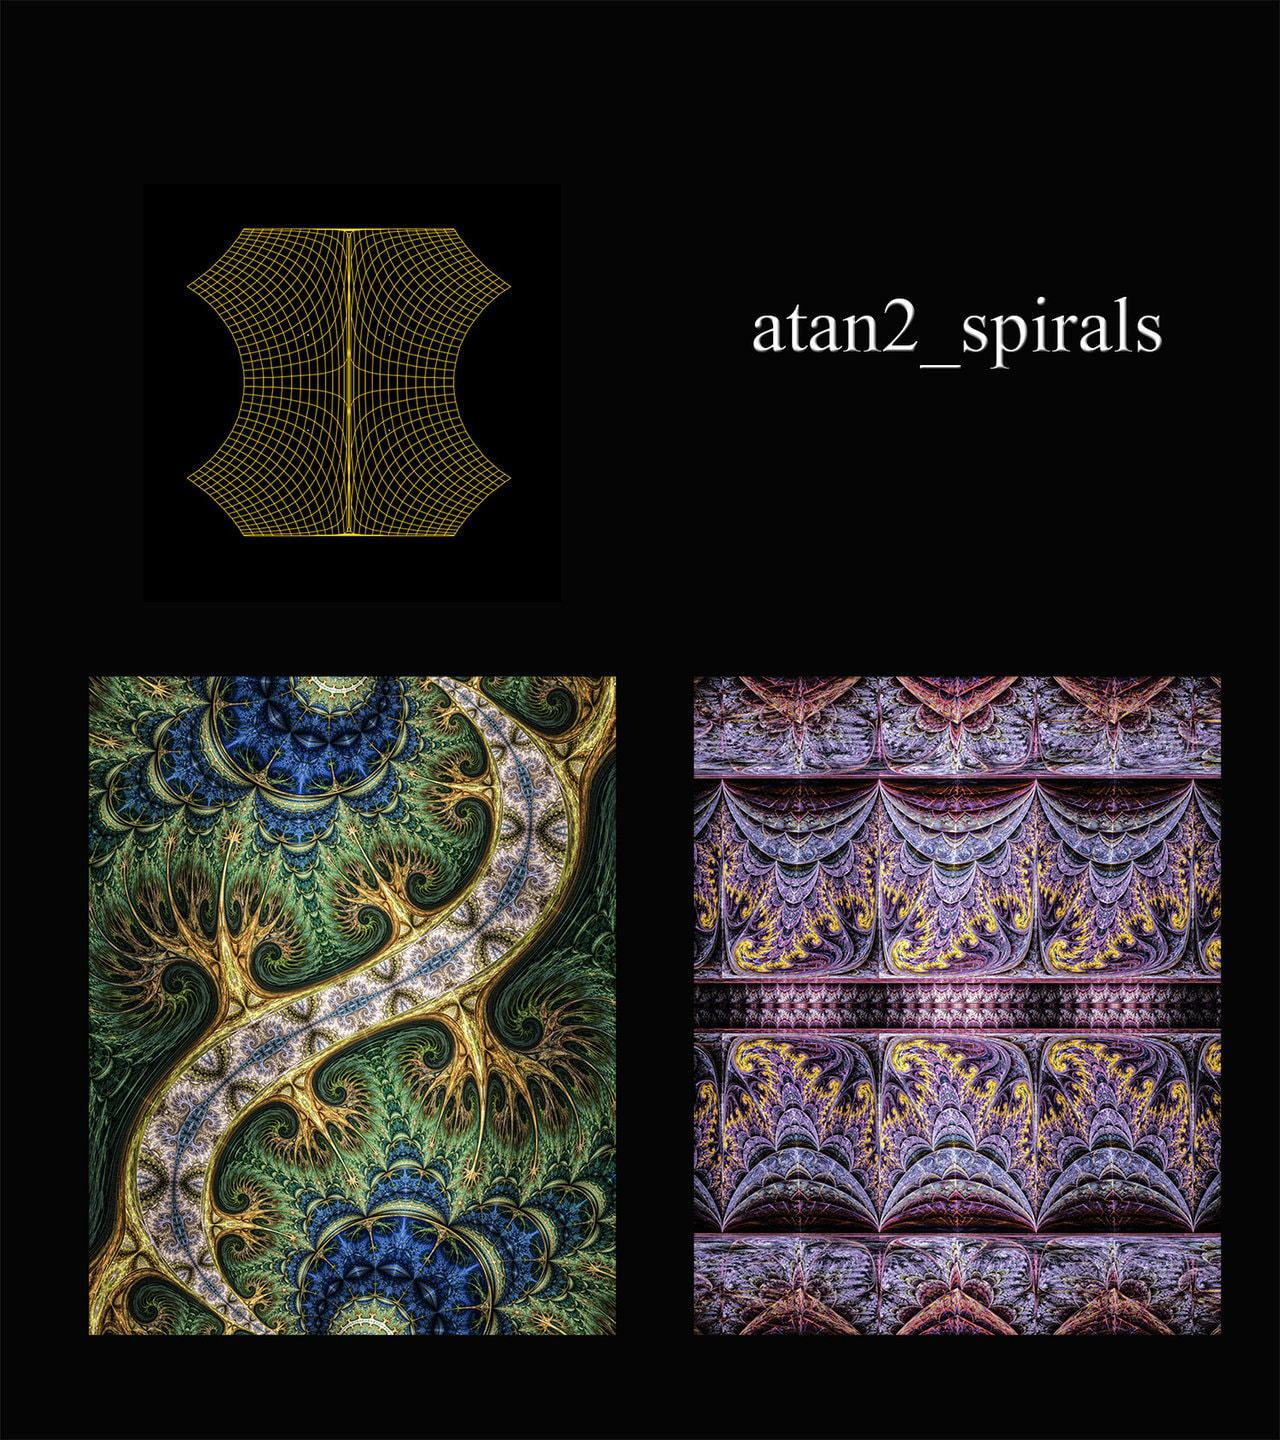 Variation based heavily on atan2 functions. With linears, it can create tiled patterns with spirals or...